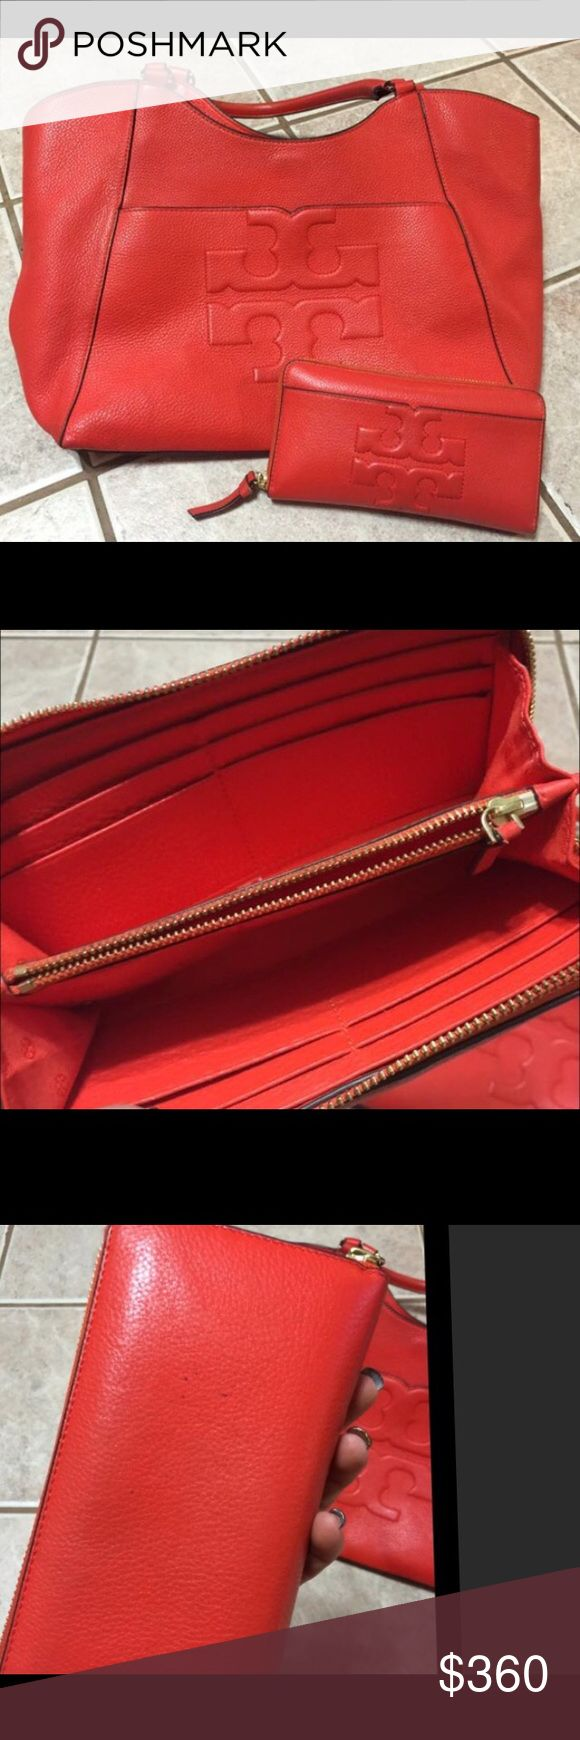 REDUCED Tory Butch TBombe purse &wallet Tory Butch T Bombe purse and wallet.  In excellent used condition with a few signs on wear and minor scratching.  See pictures.  (Small stain inside bag) Color is called Poppy Red but is a true orange color. Tory Burch Bags Shoulder Bags